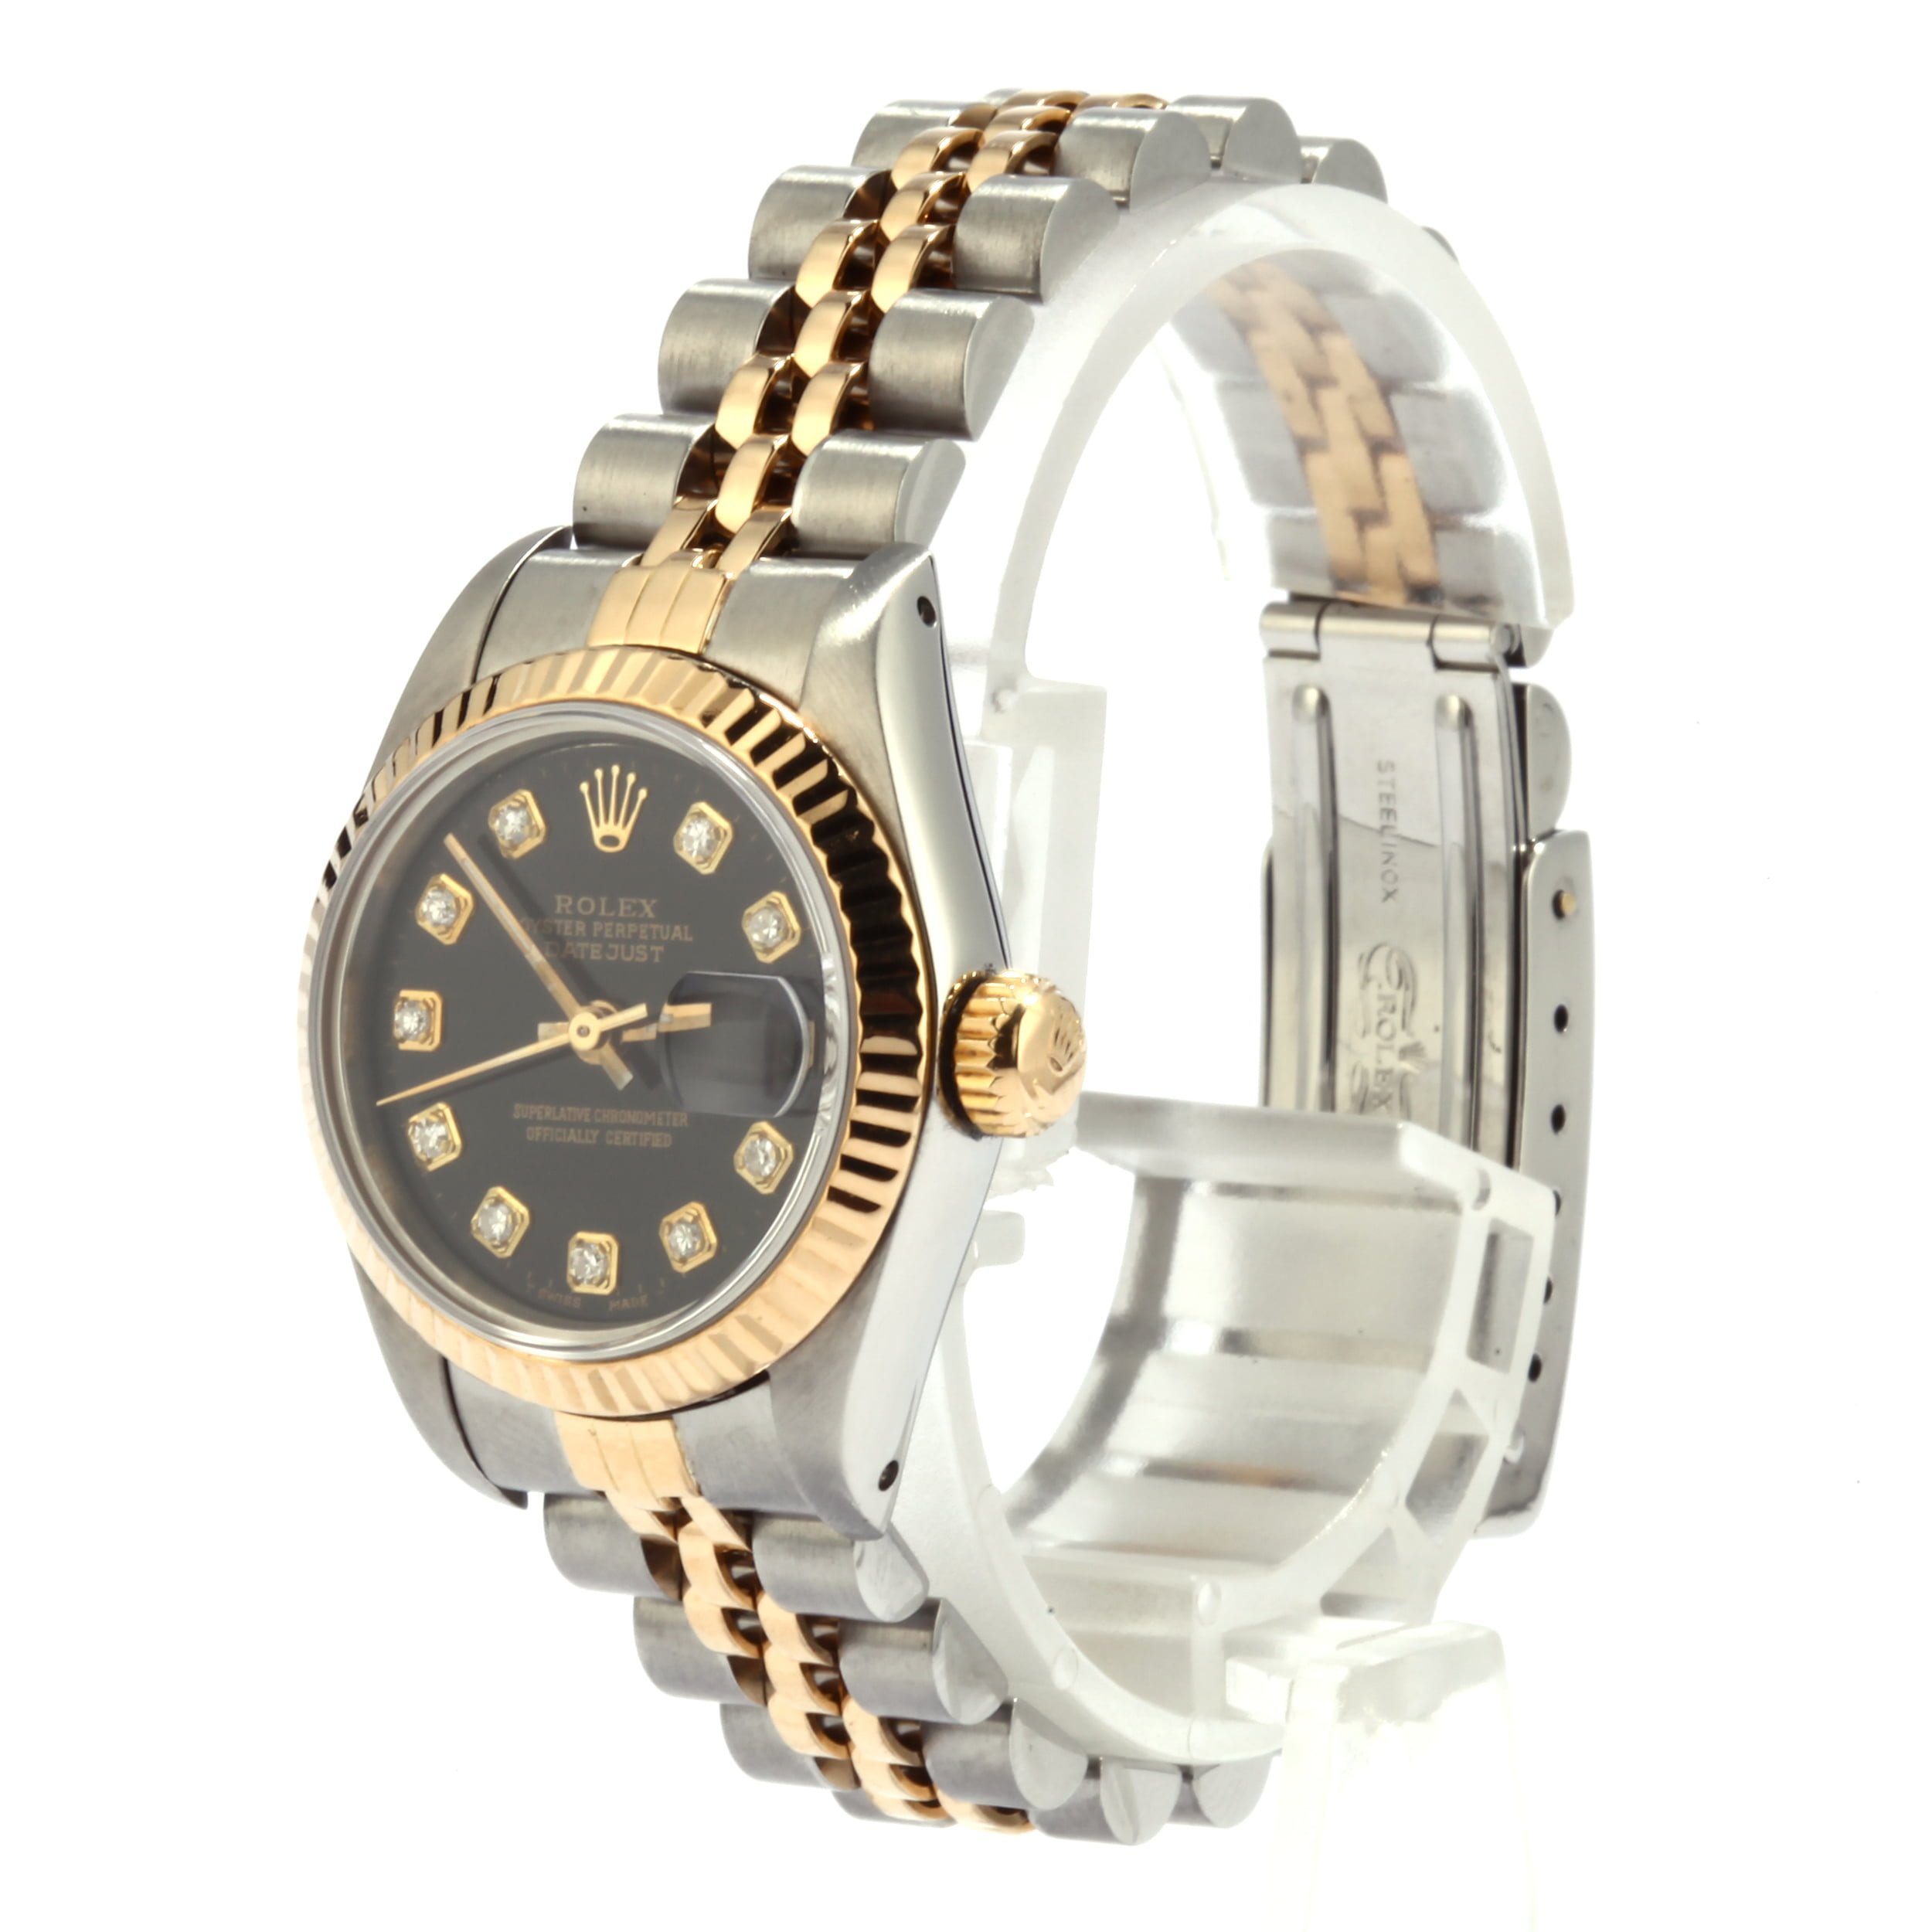 a8222a2ddfa Ladies Rolex DateJust 69173 Diamond Dial - Buy it Now For $3880 at ...